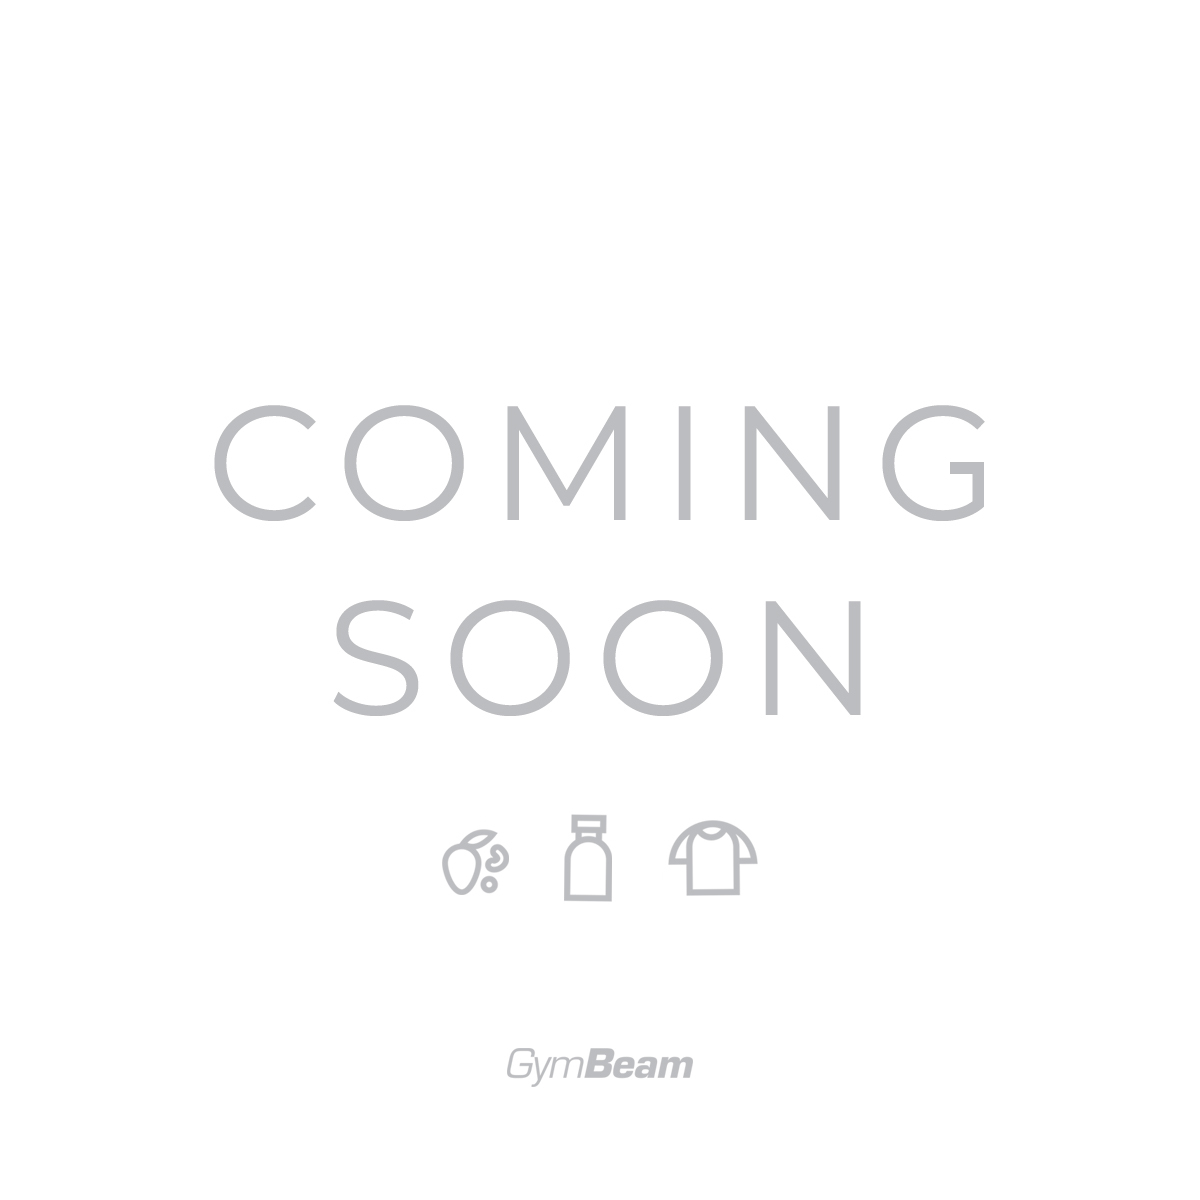 Sutienul de sport Simple Black - GymBeam